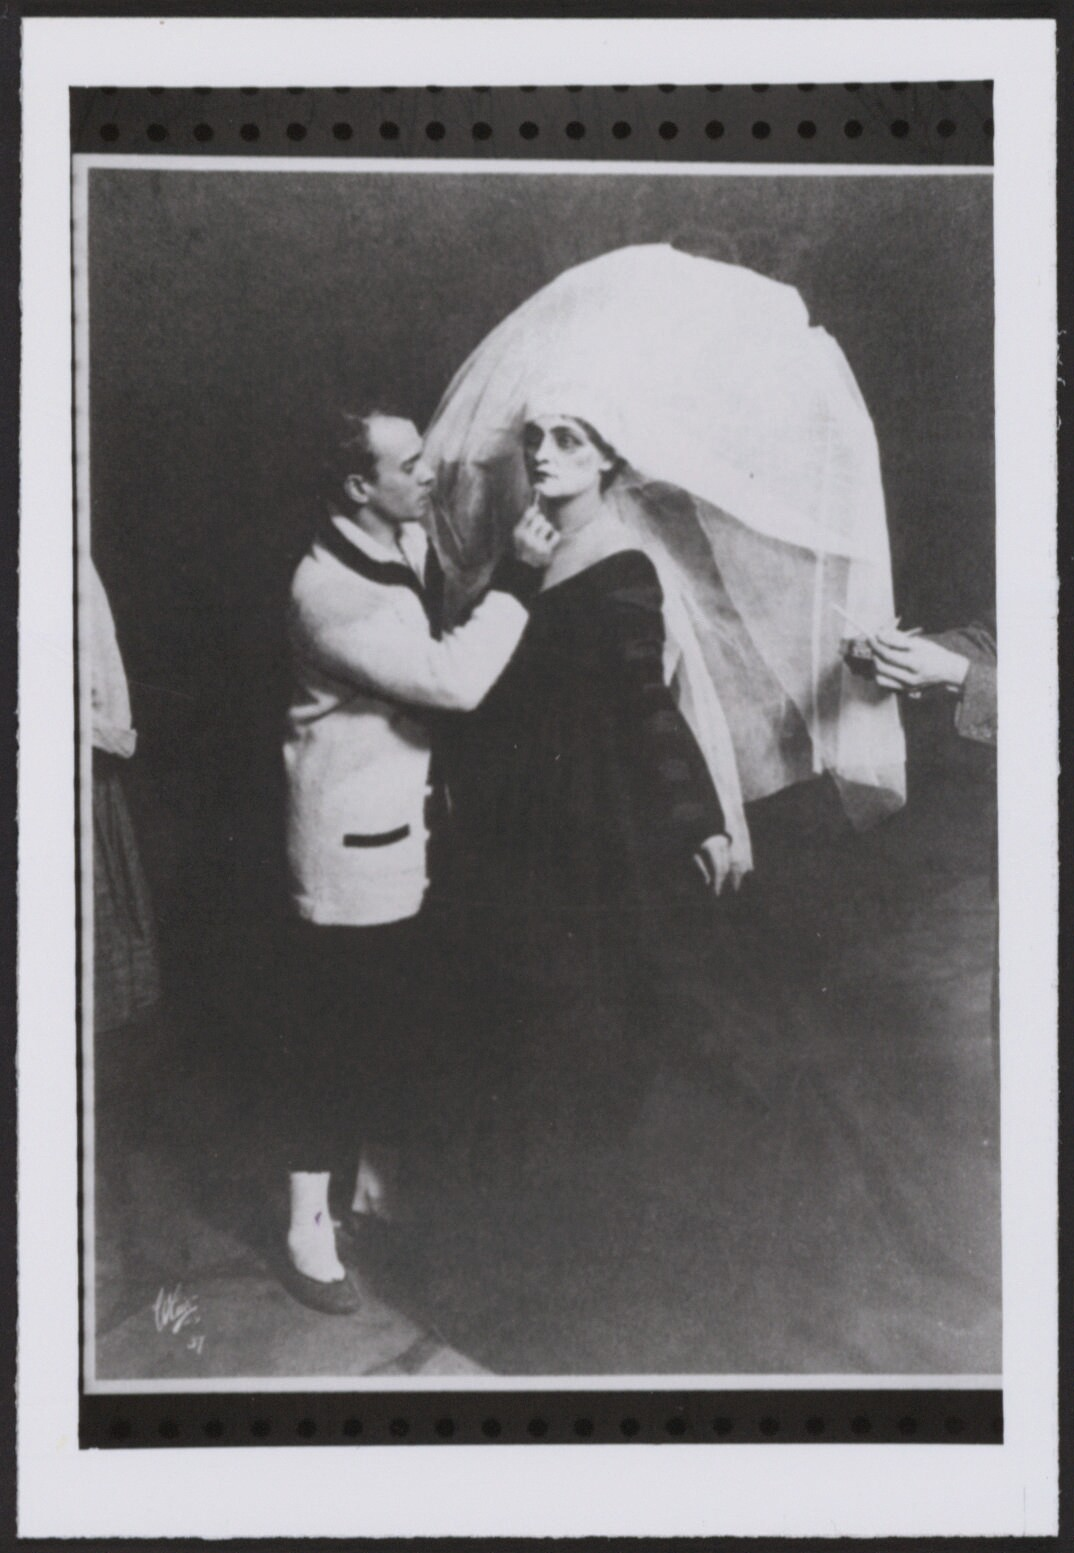 Nijinsky applies makeup to a performer, 1916